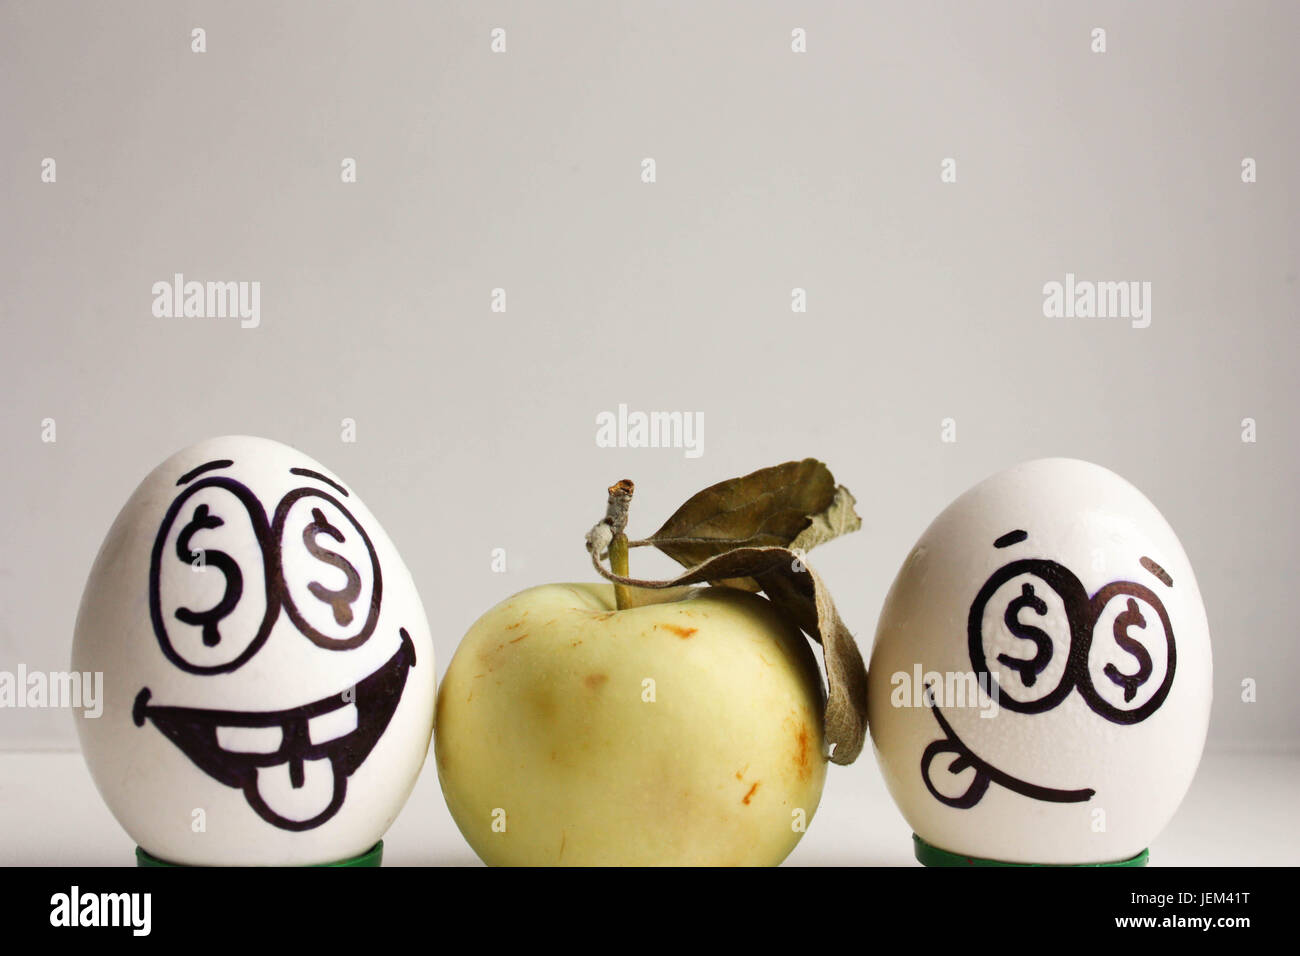 Business Idea Eggs With Face And Eyes With Dollars And An Apple Photo For Your Design